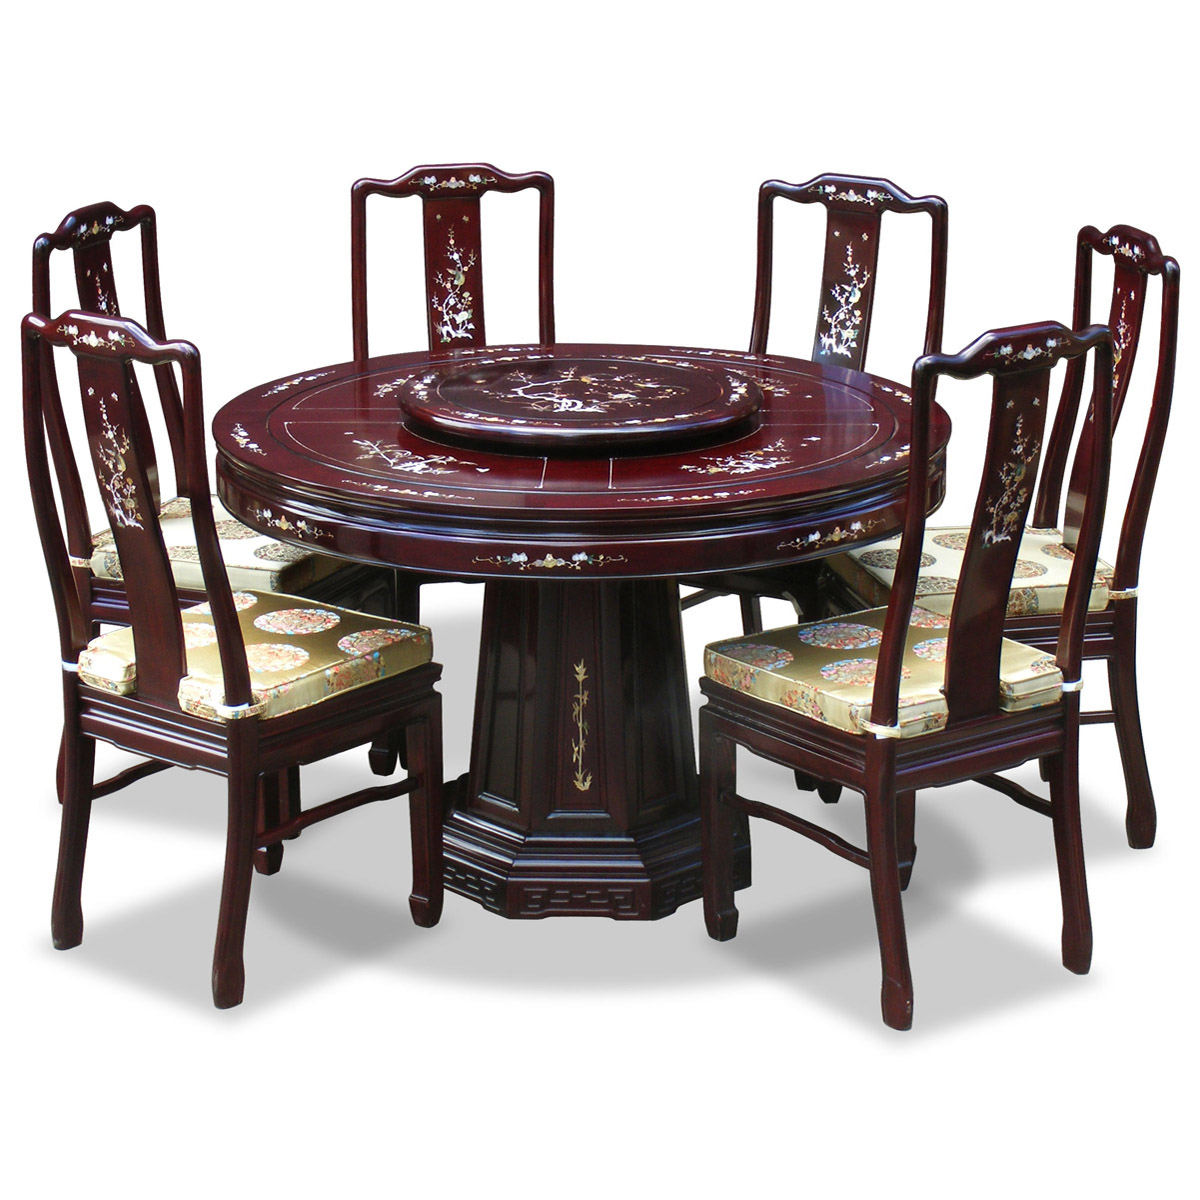 Oriental Dining Table